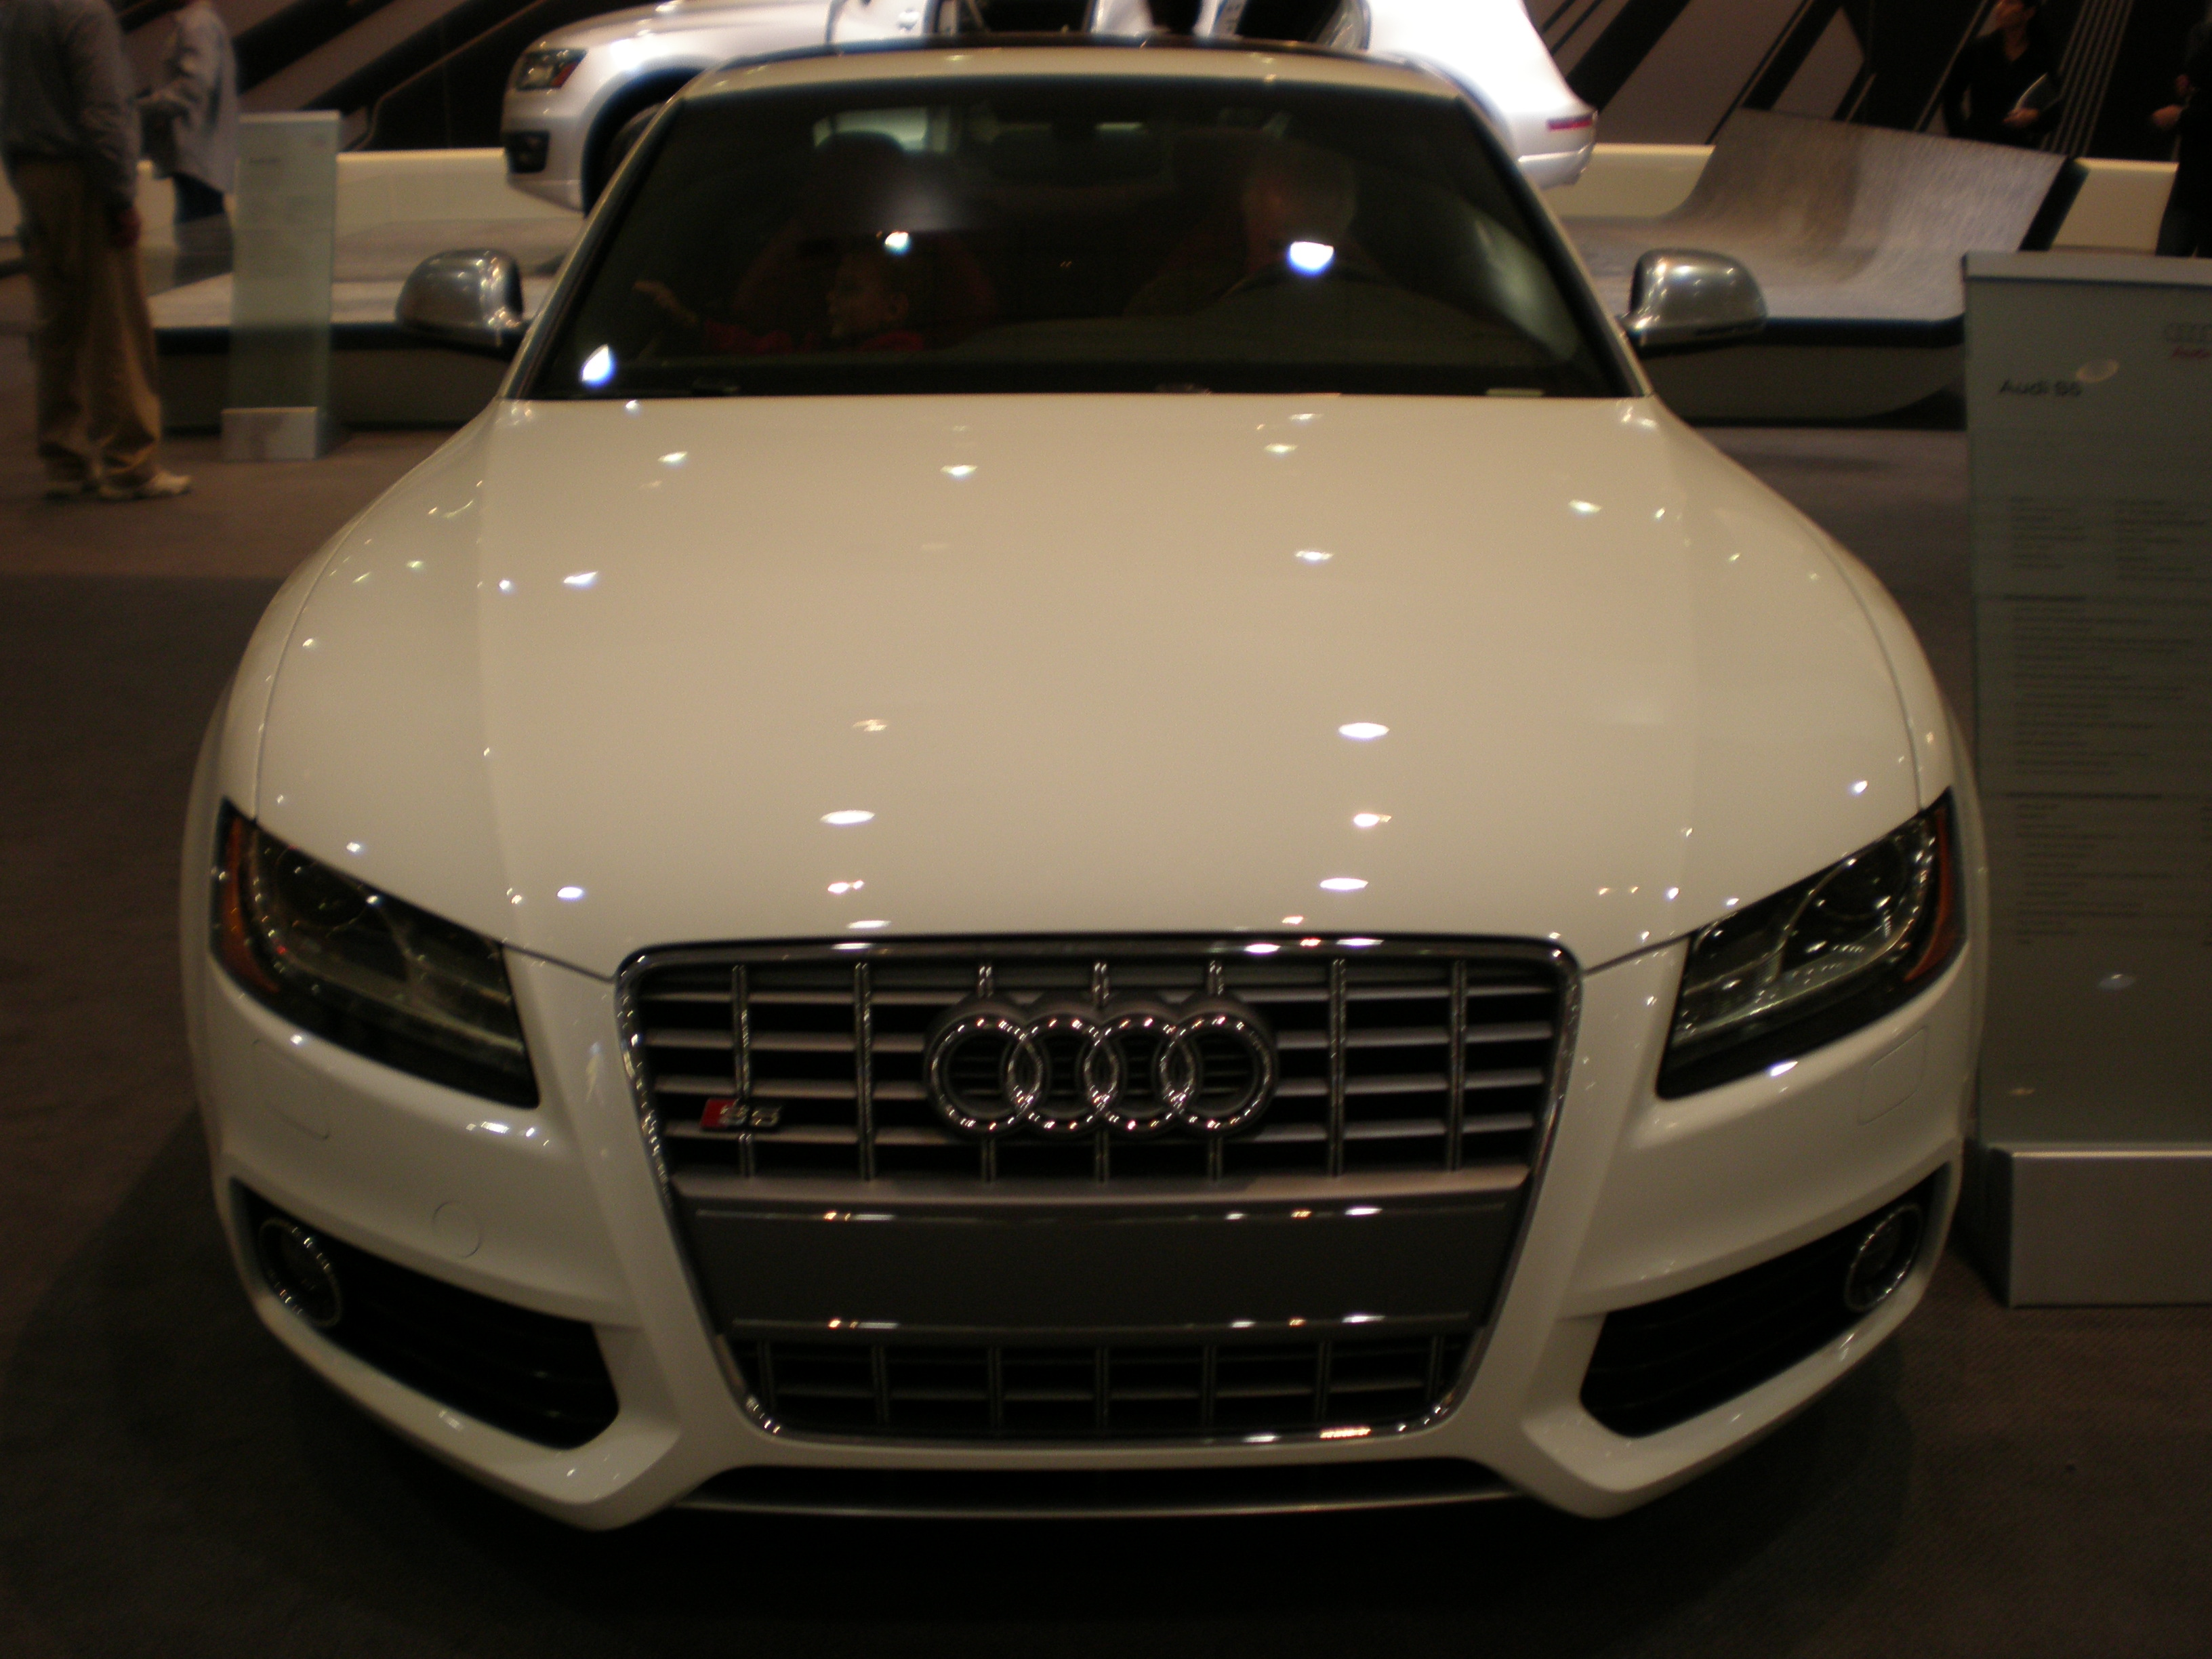 File:2009 white Audi S5 front.JPG - Wikimedia Commons